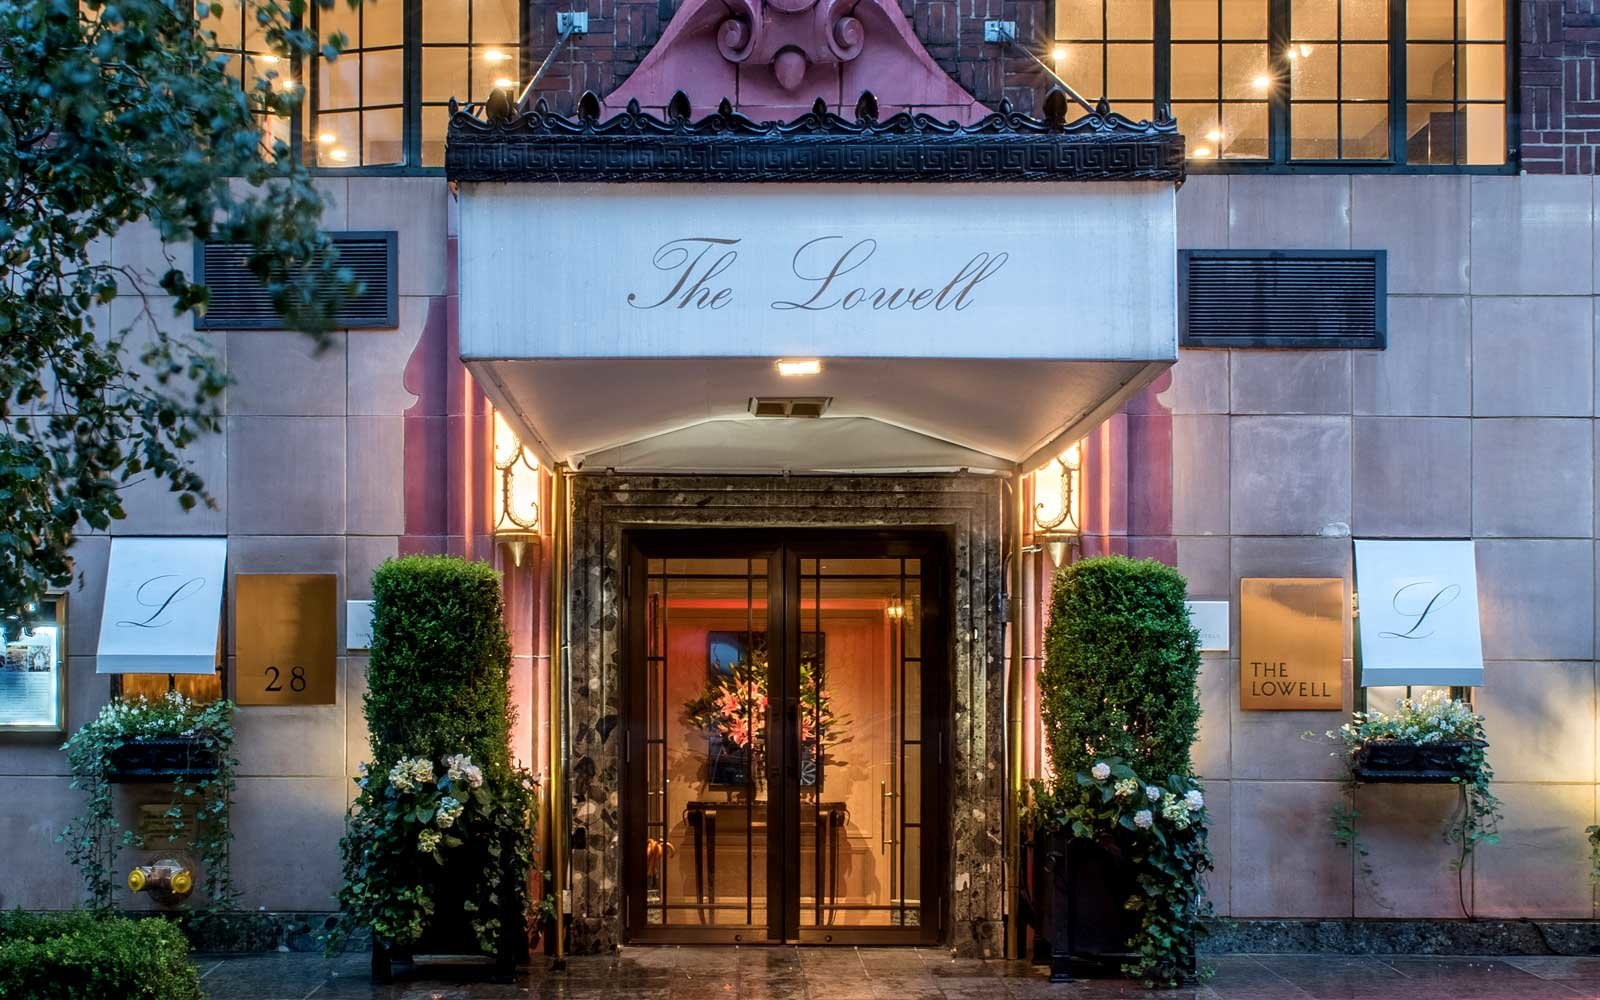 The Lowell Hotel, New York